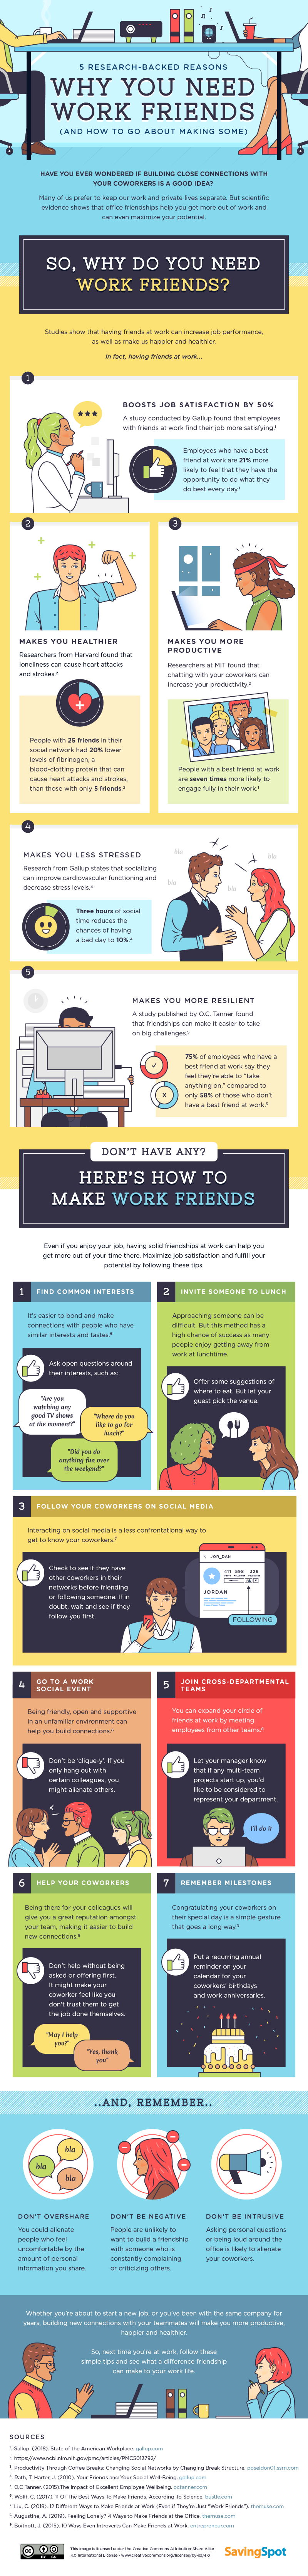 5 Research-Backed Reasons Why You Need Work Friends